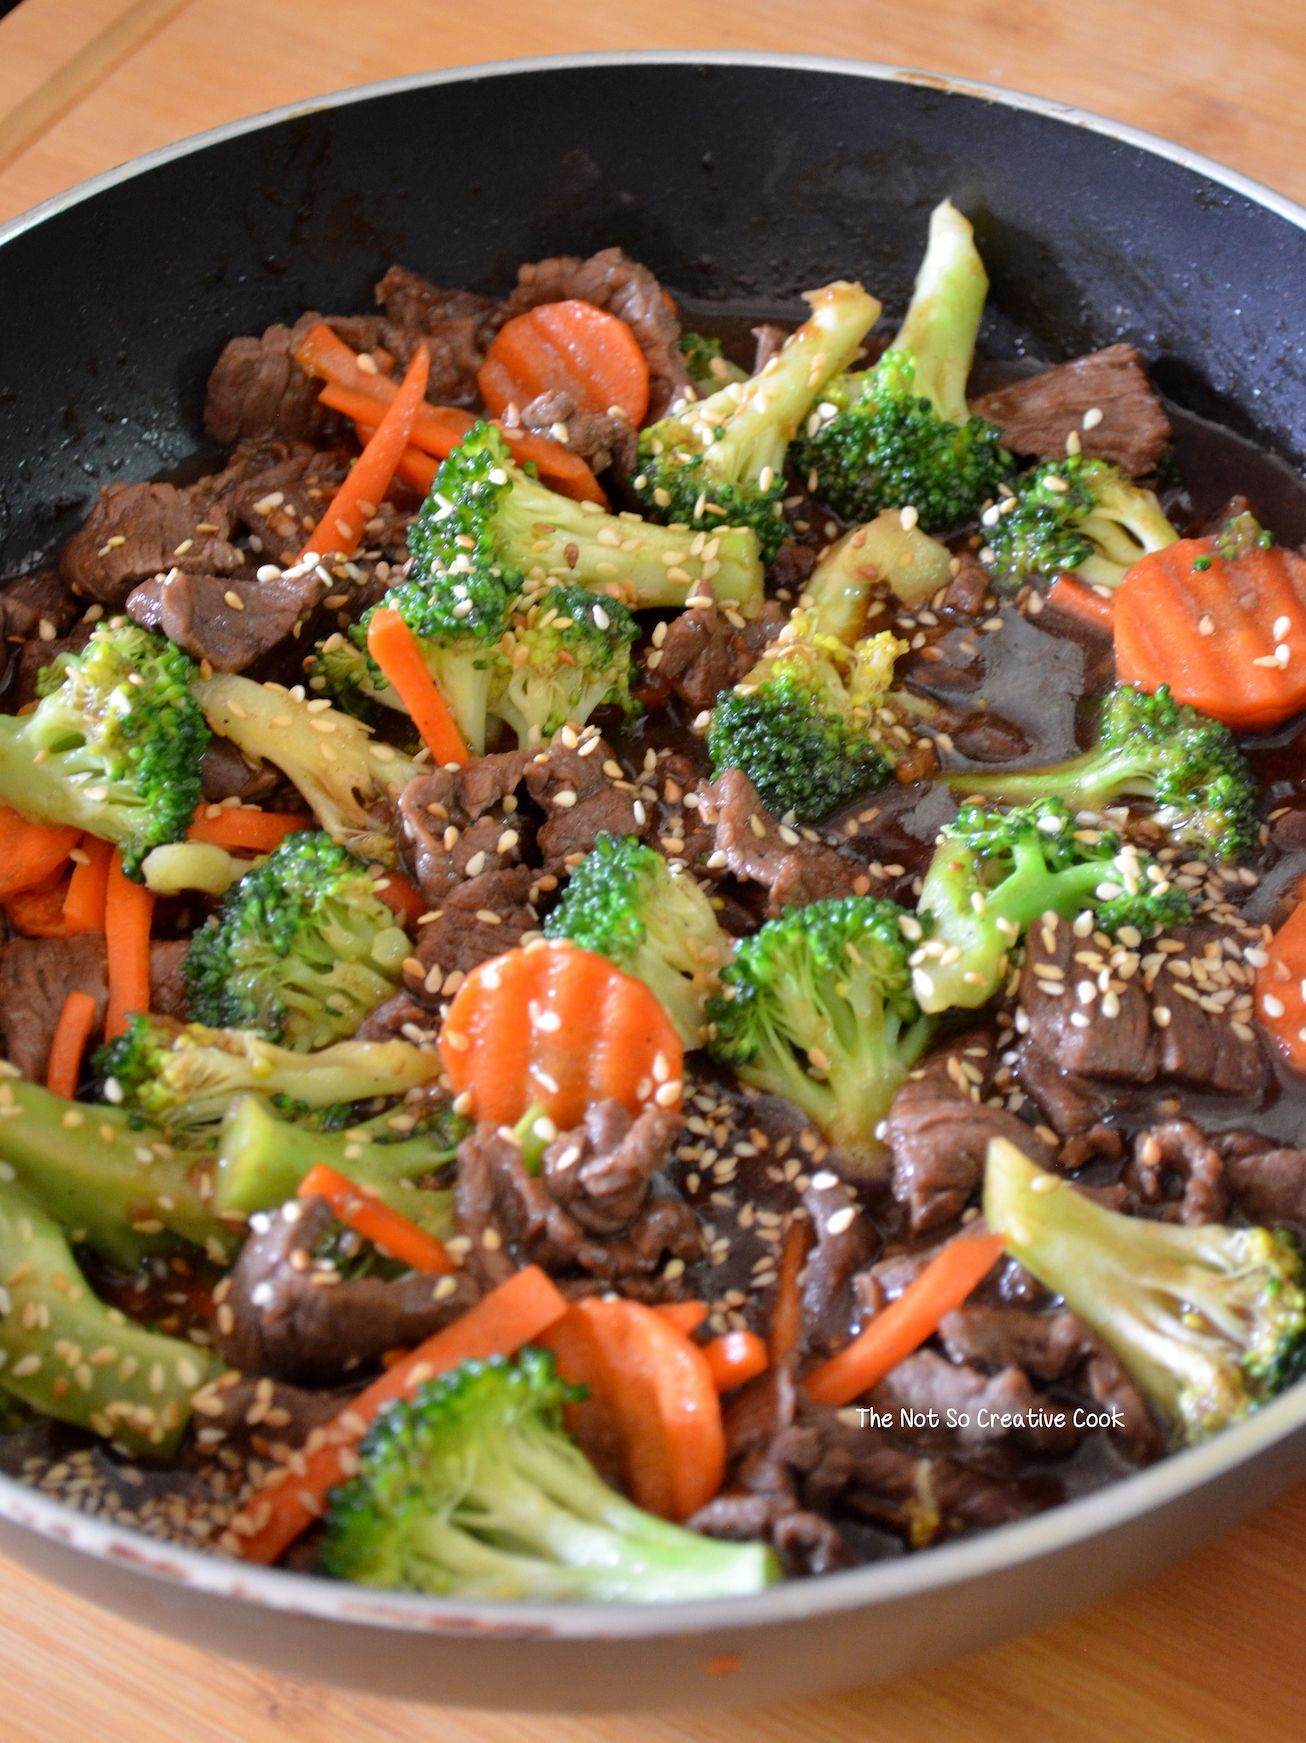 Saucy Beef With Broccoli And Carrots The Not So Creative Cook Recipe In 2020 Broccoli Beef Steak And Broccoli Beef